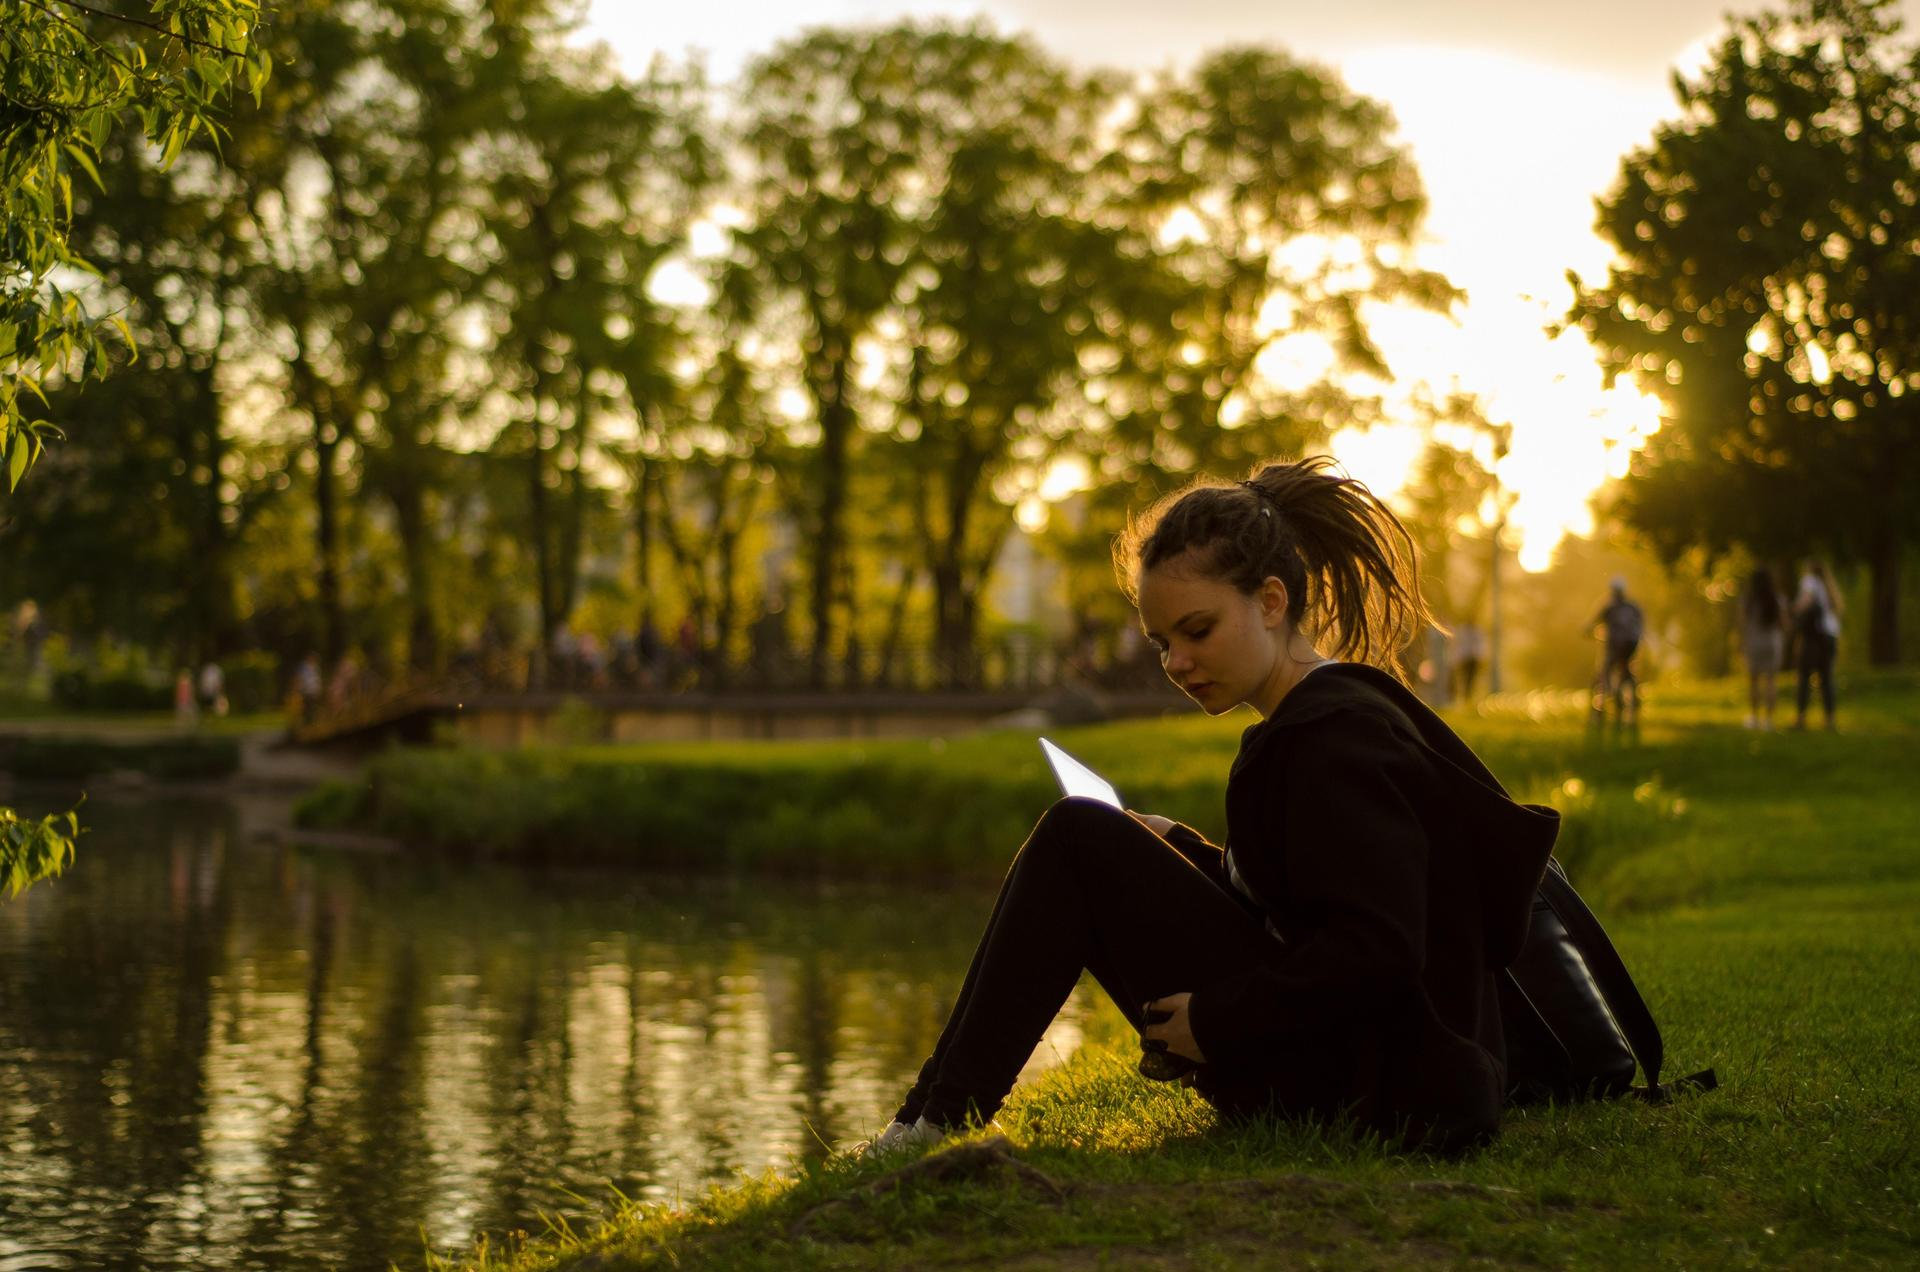 Girl reading by a pond